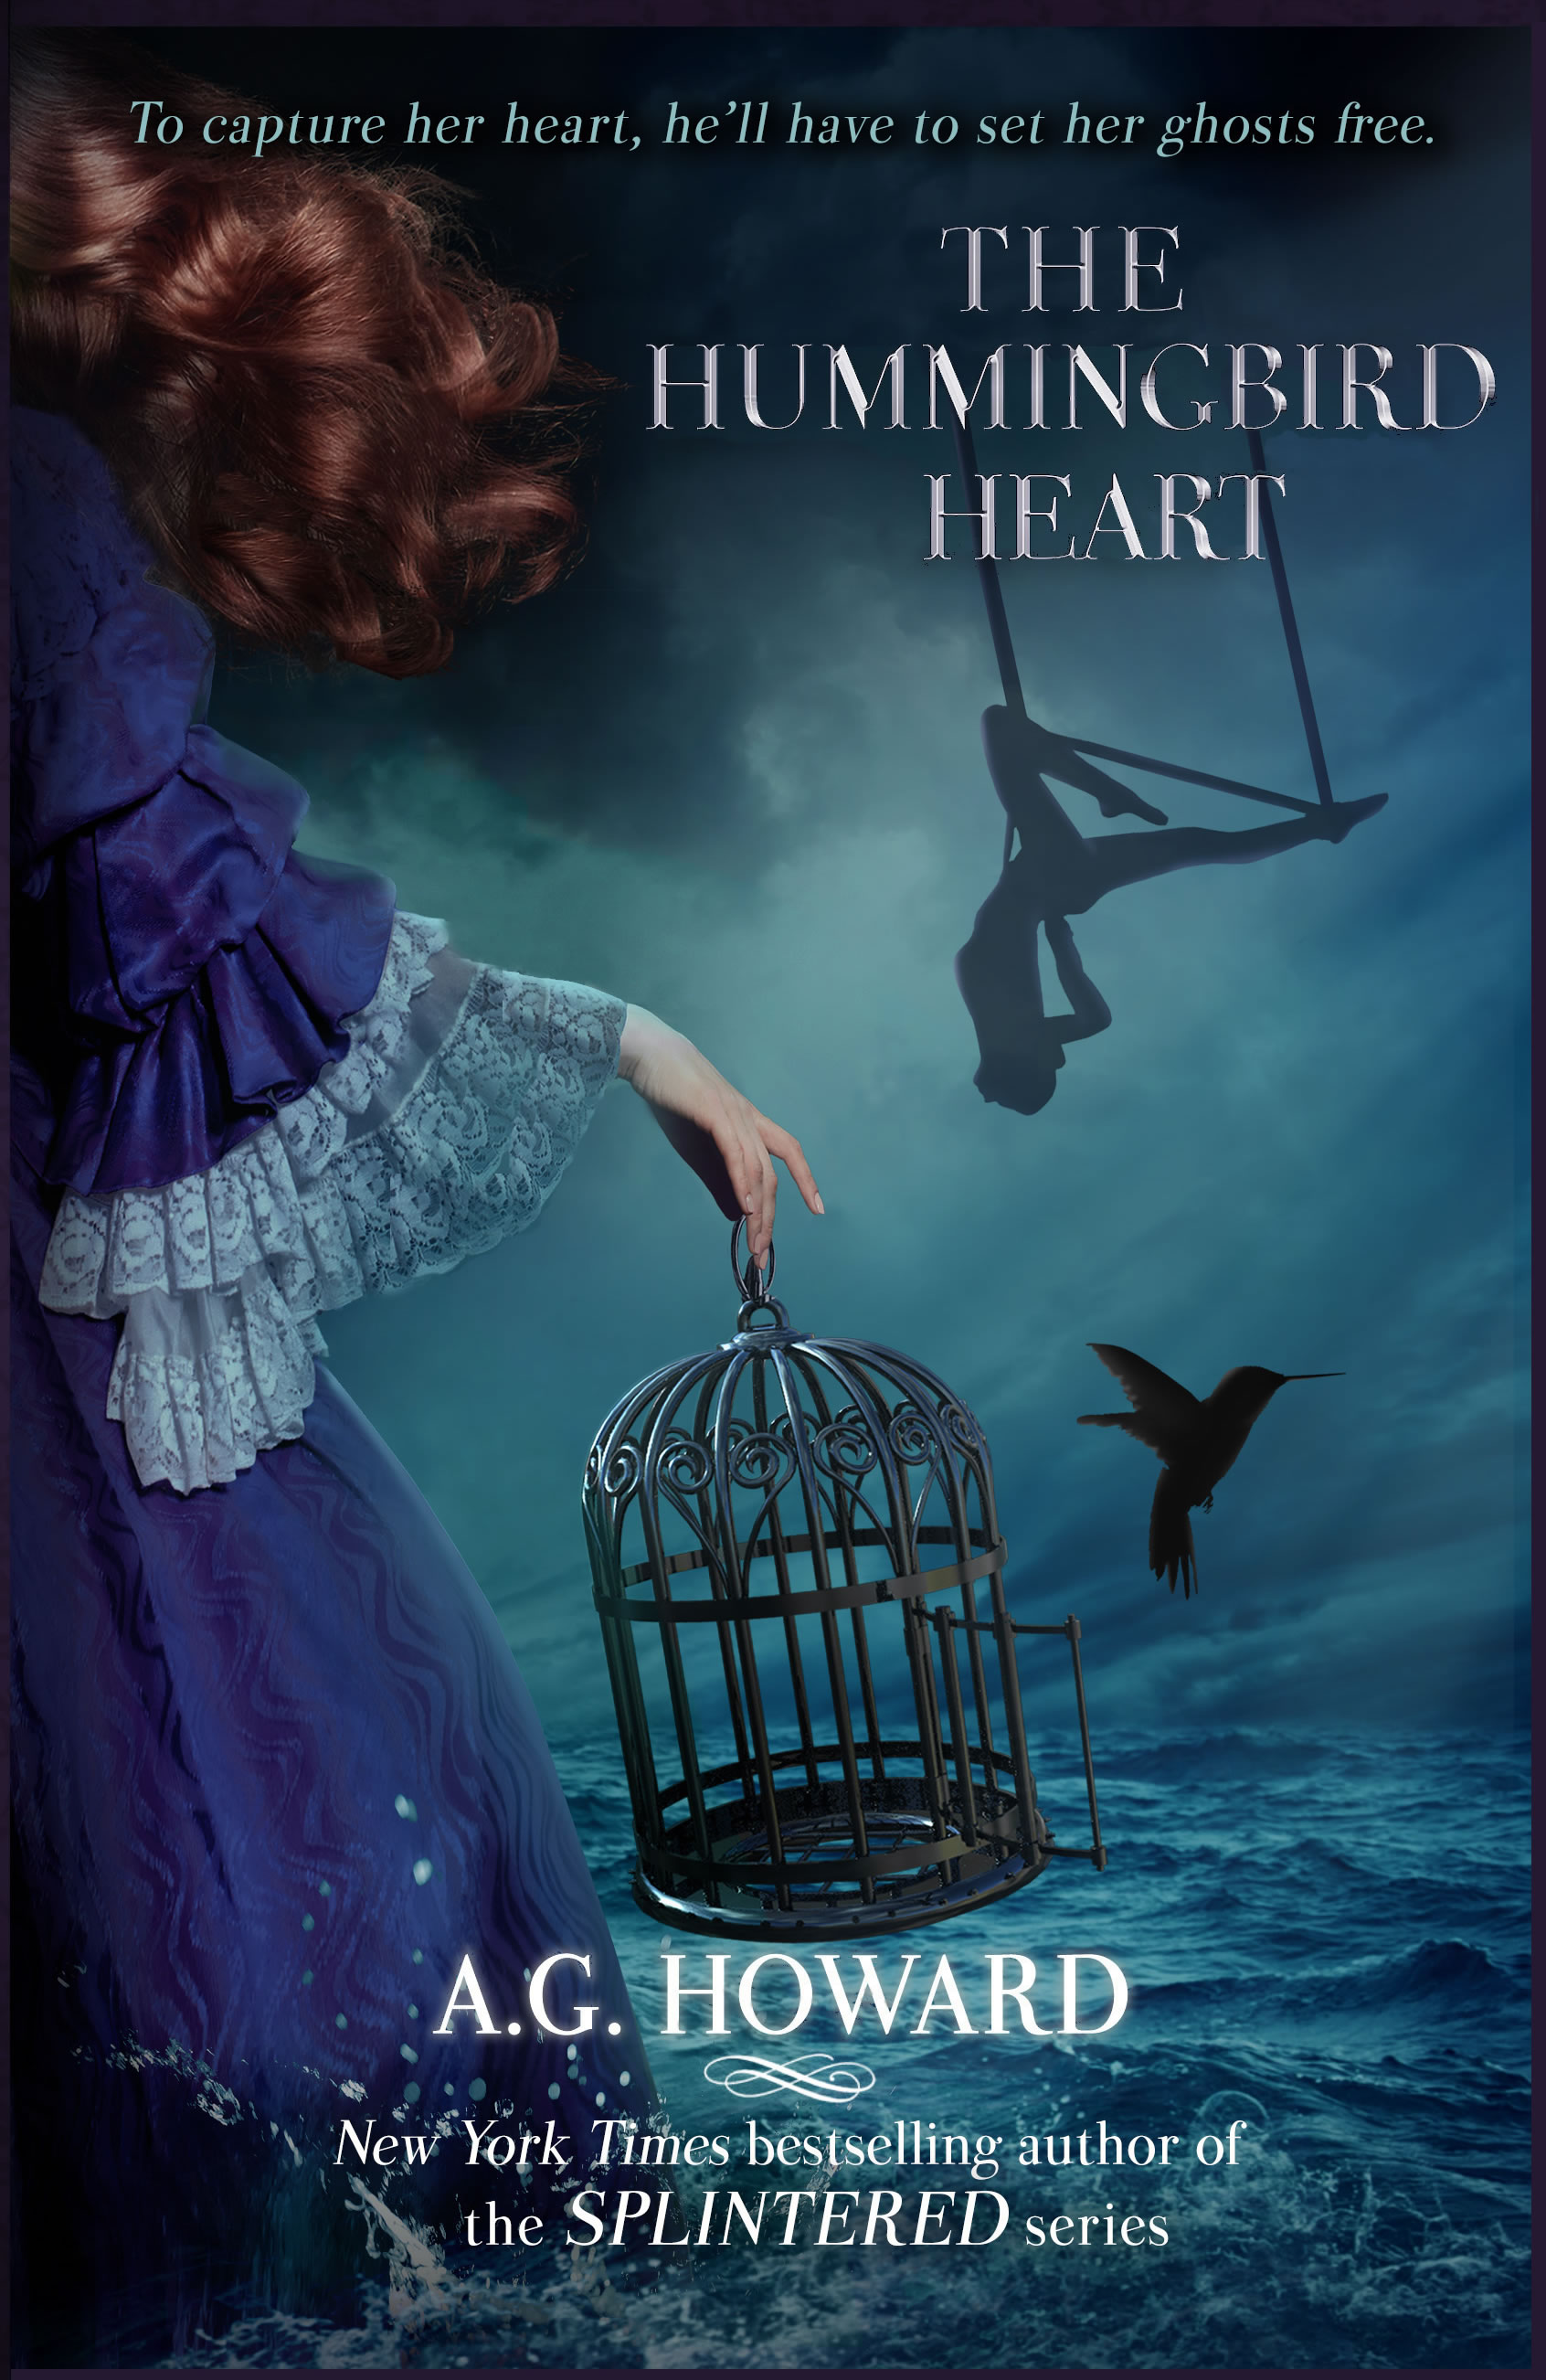 #Excerpt: THE HUMMINGBIRD HEART by A.G. Howard